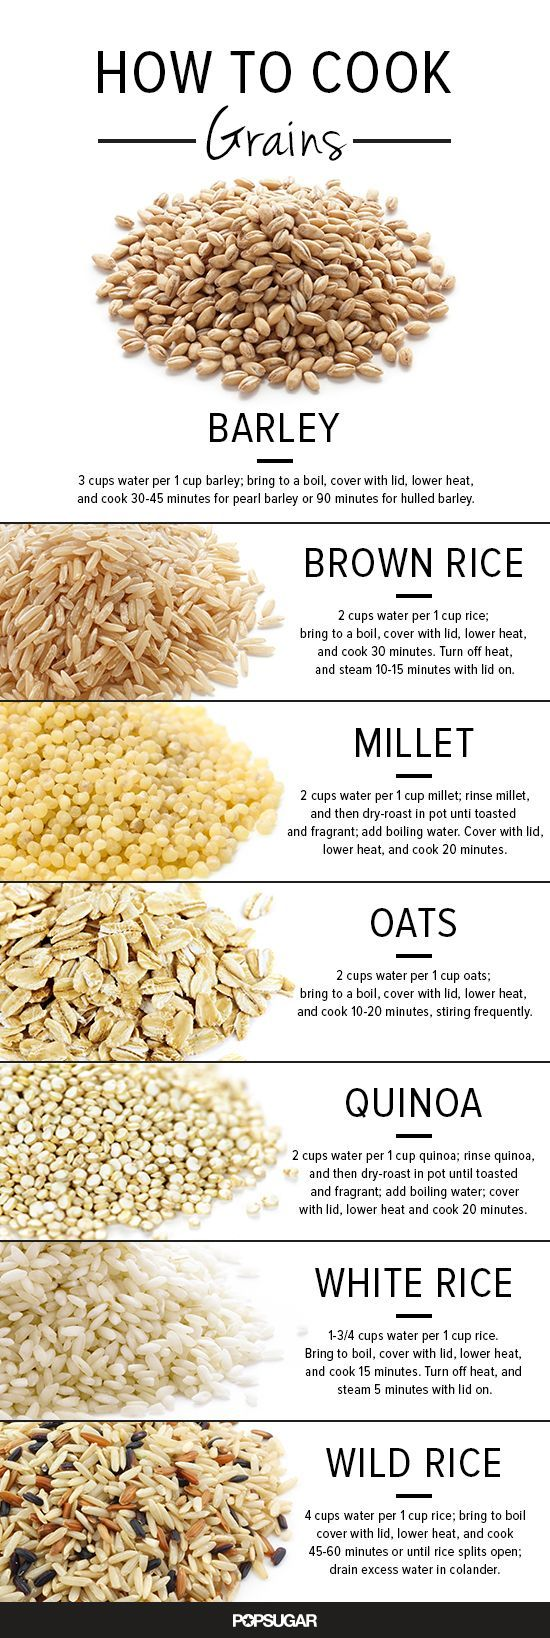 Obviously not the barley but its good to know how to cook grains. Great guide to cooking your grains!